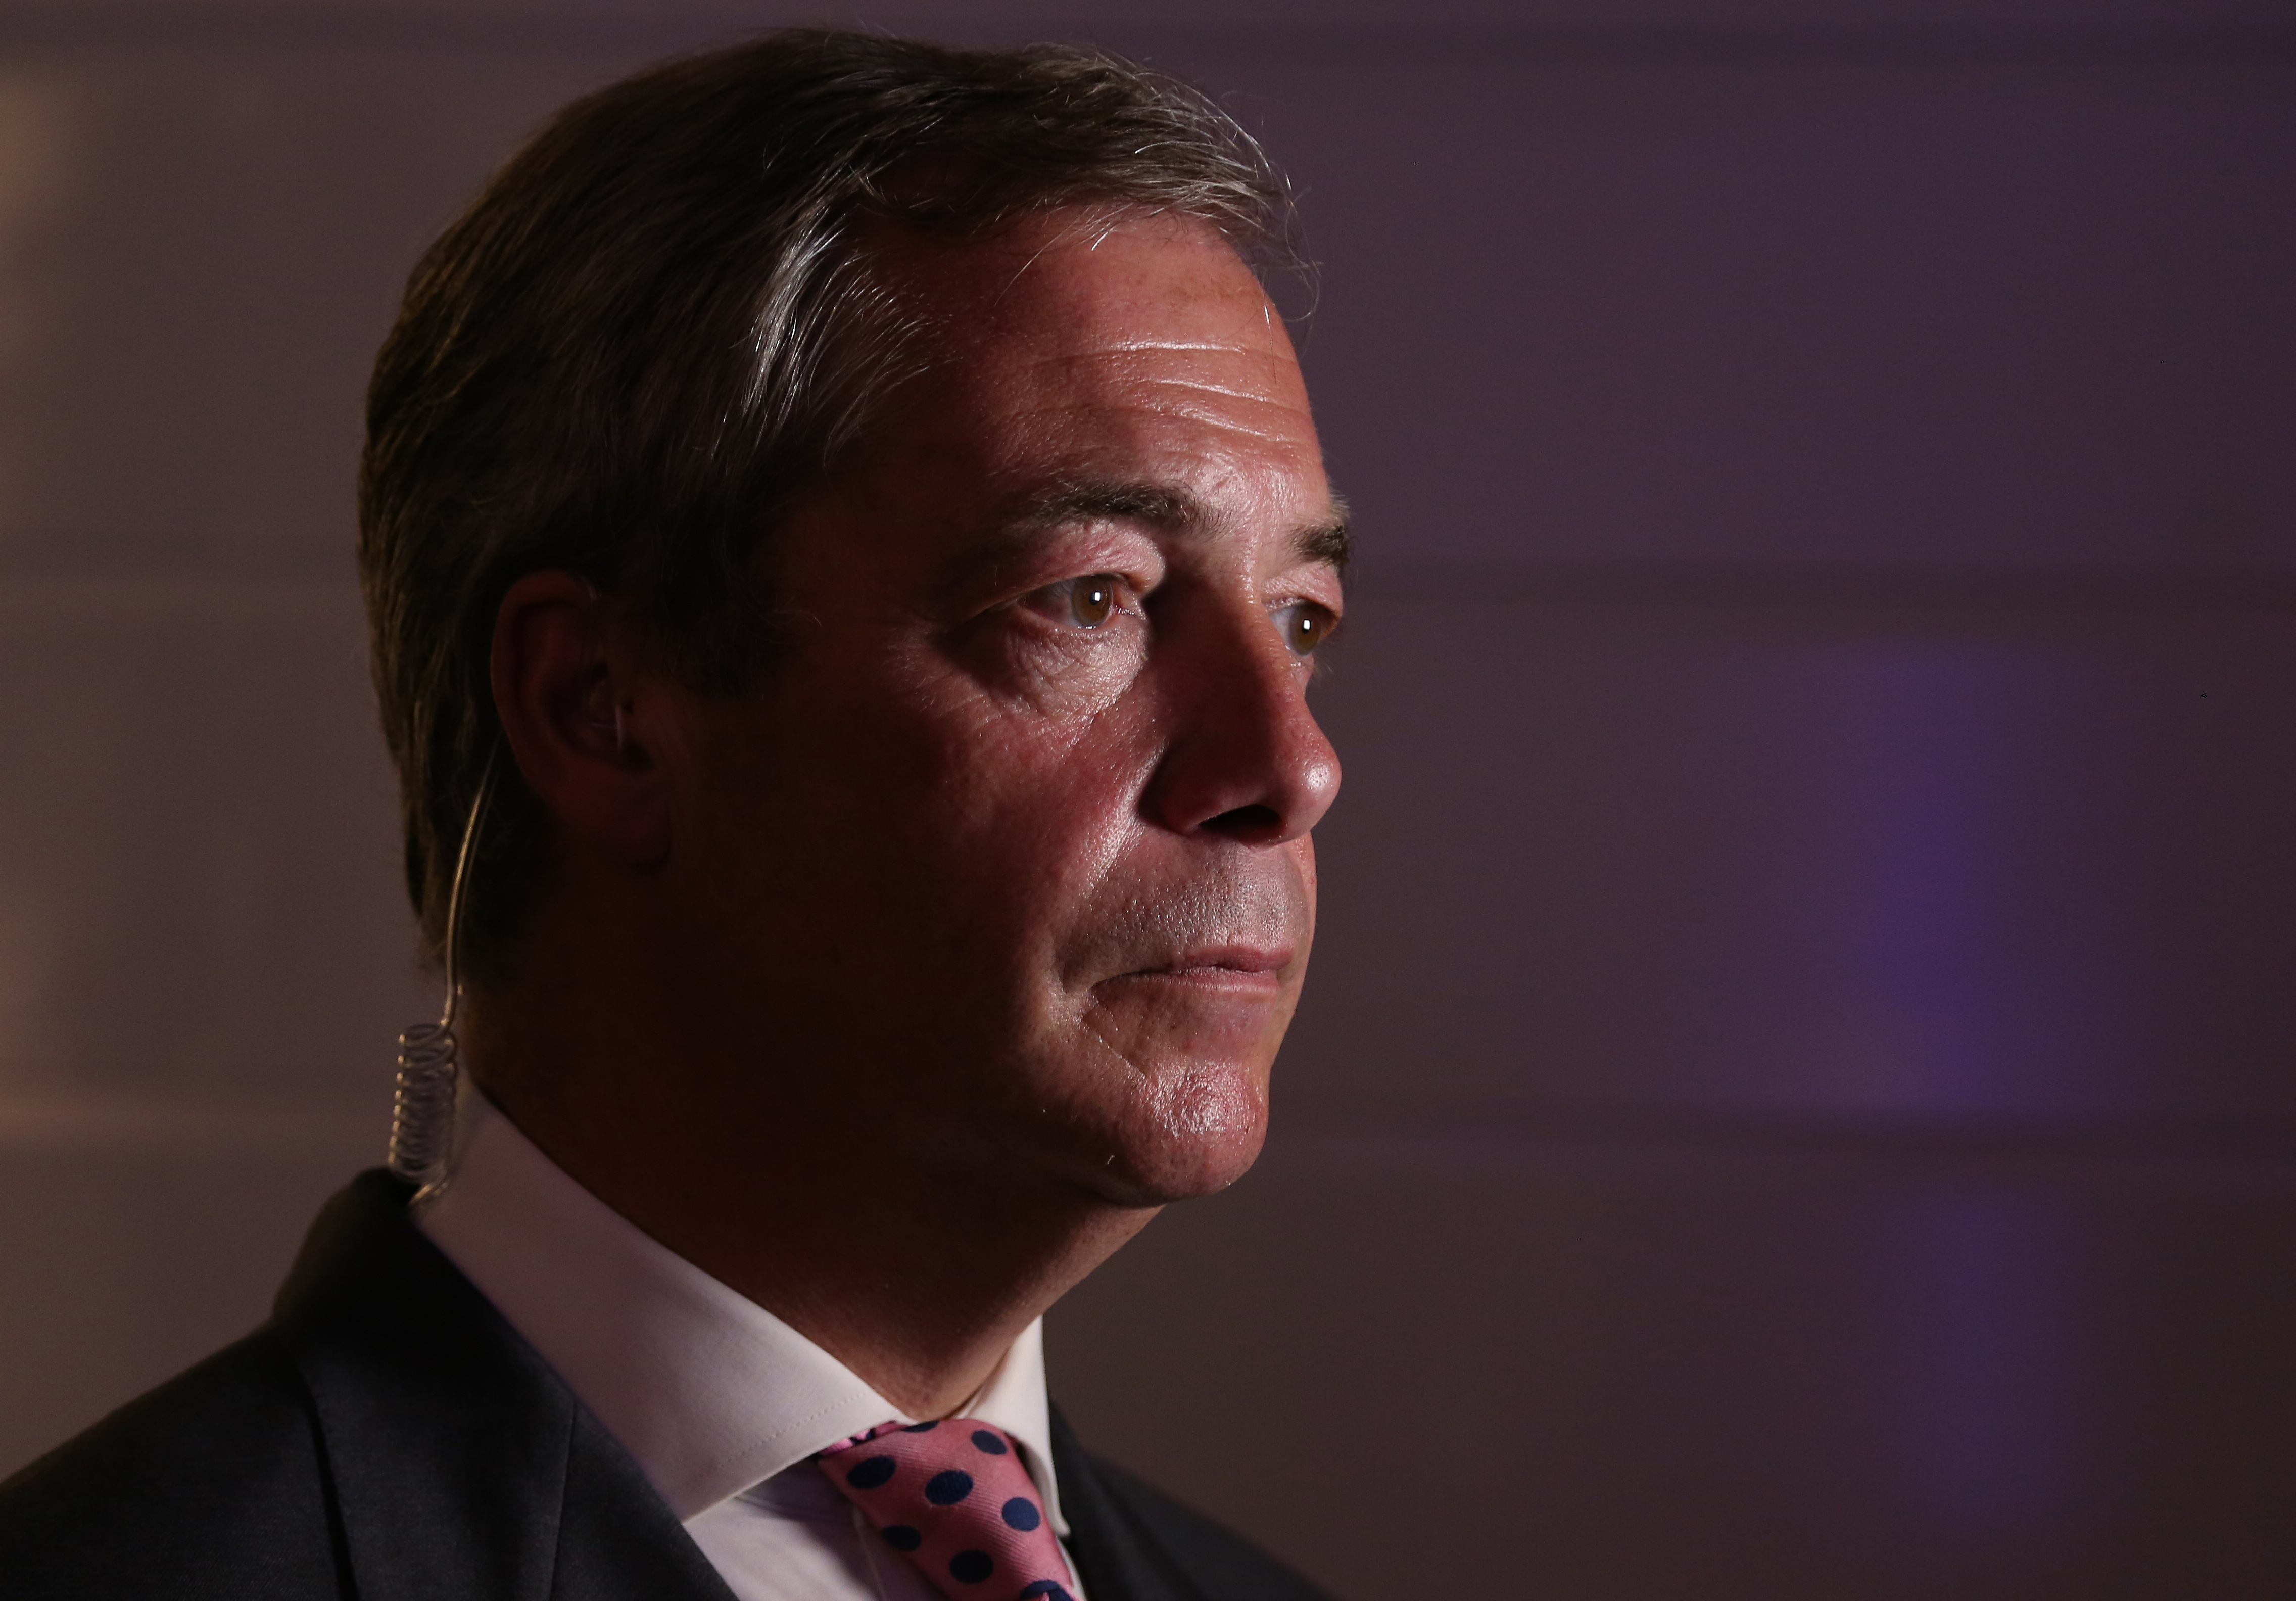 Nigel Farage during an interview in London on June 23 2016.